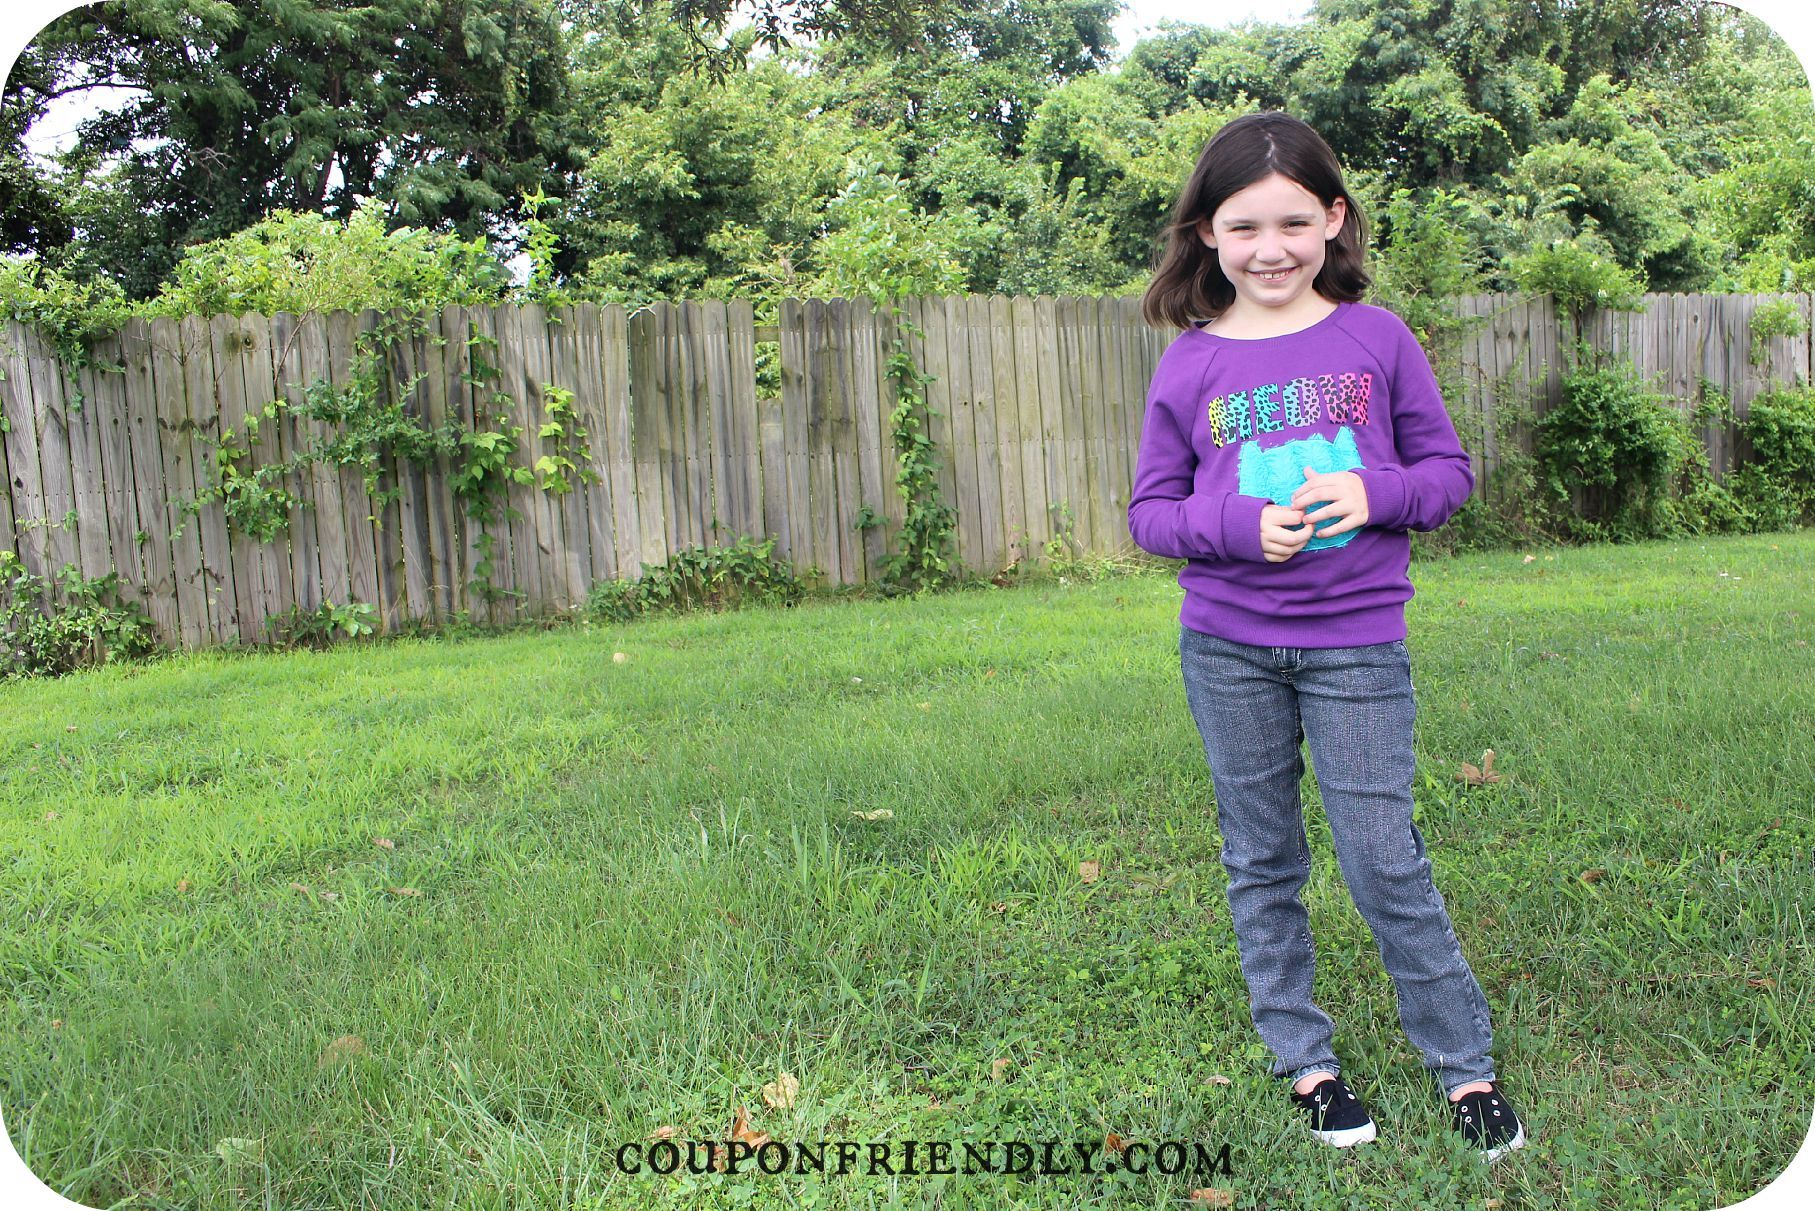 Girls Go Meow Over the @Kmart Back to School Apparel #ad #Kmart http://couponfriendly.com/2015/09/girls-go-meow-over-kmarts-back-to-school-apparel.html